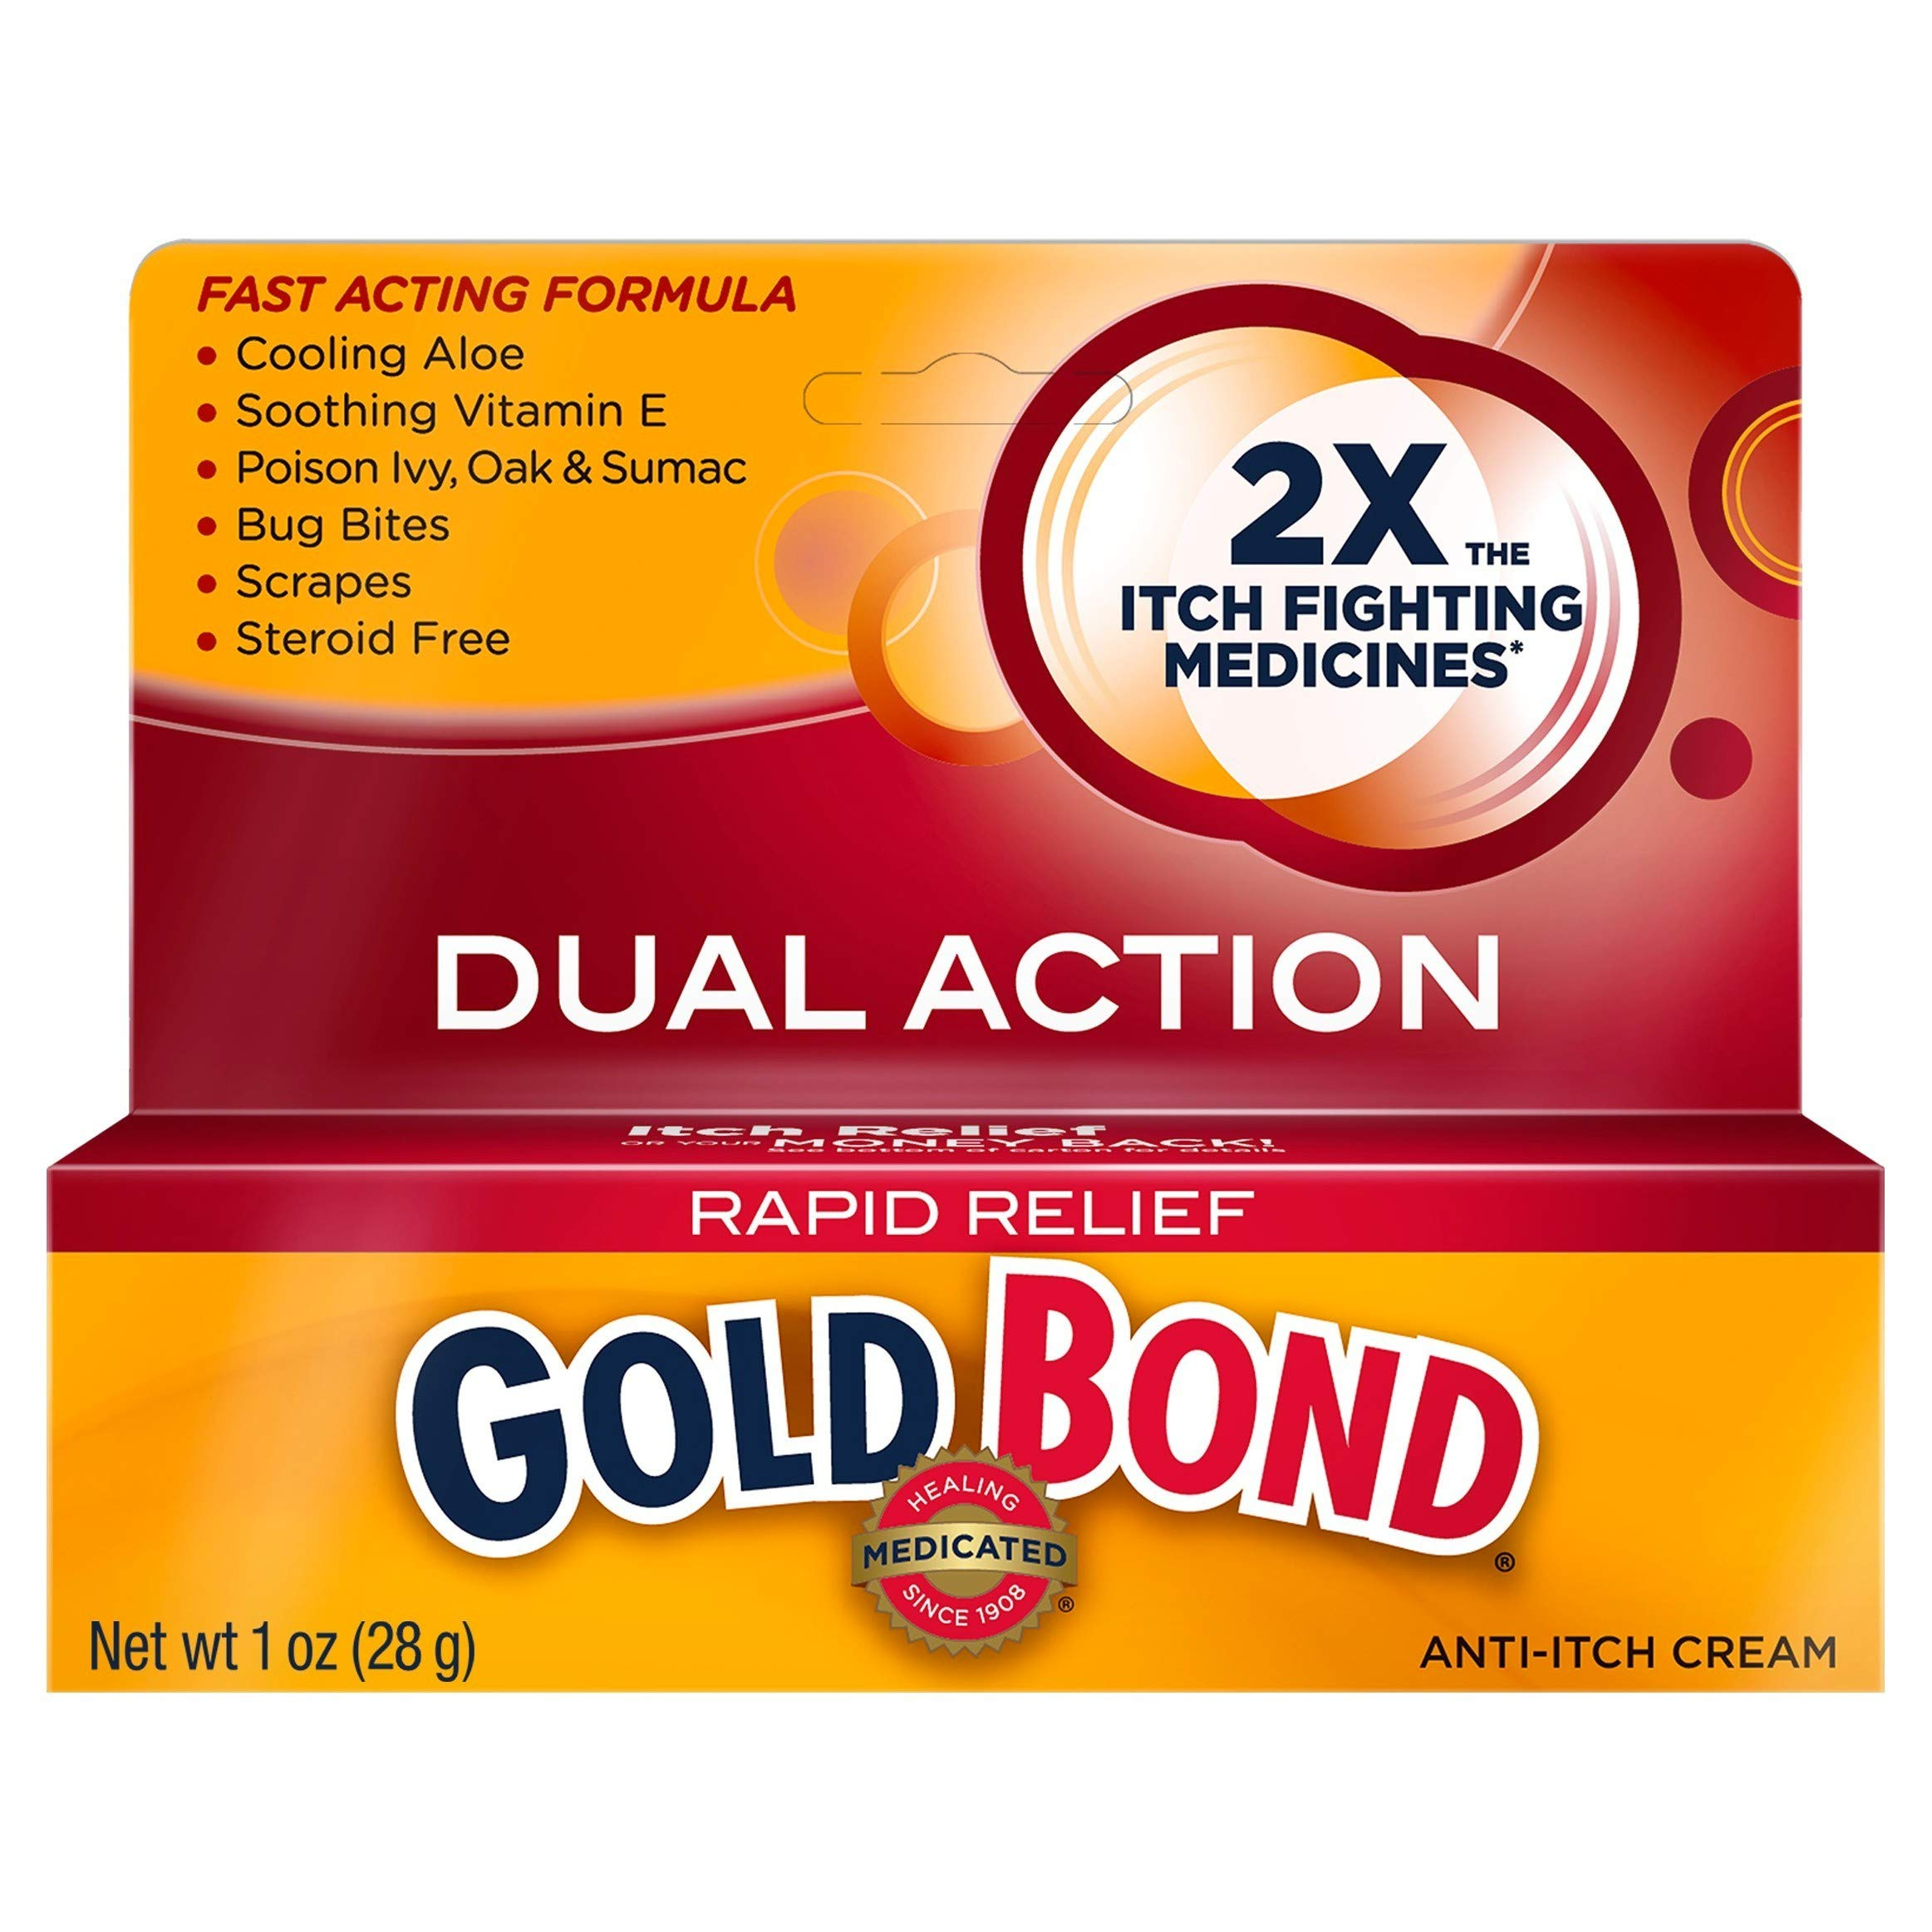 Gold Bond Rapid Relief Anti-Itch Cream 1 oz (Pack of 12) by Gold Bond